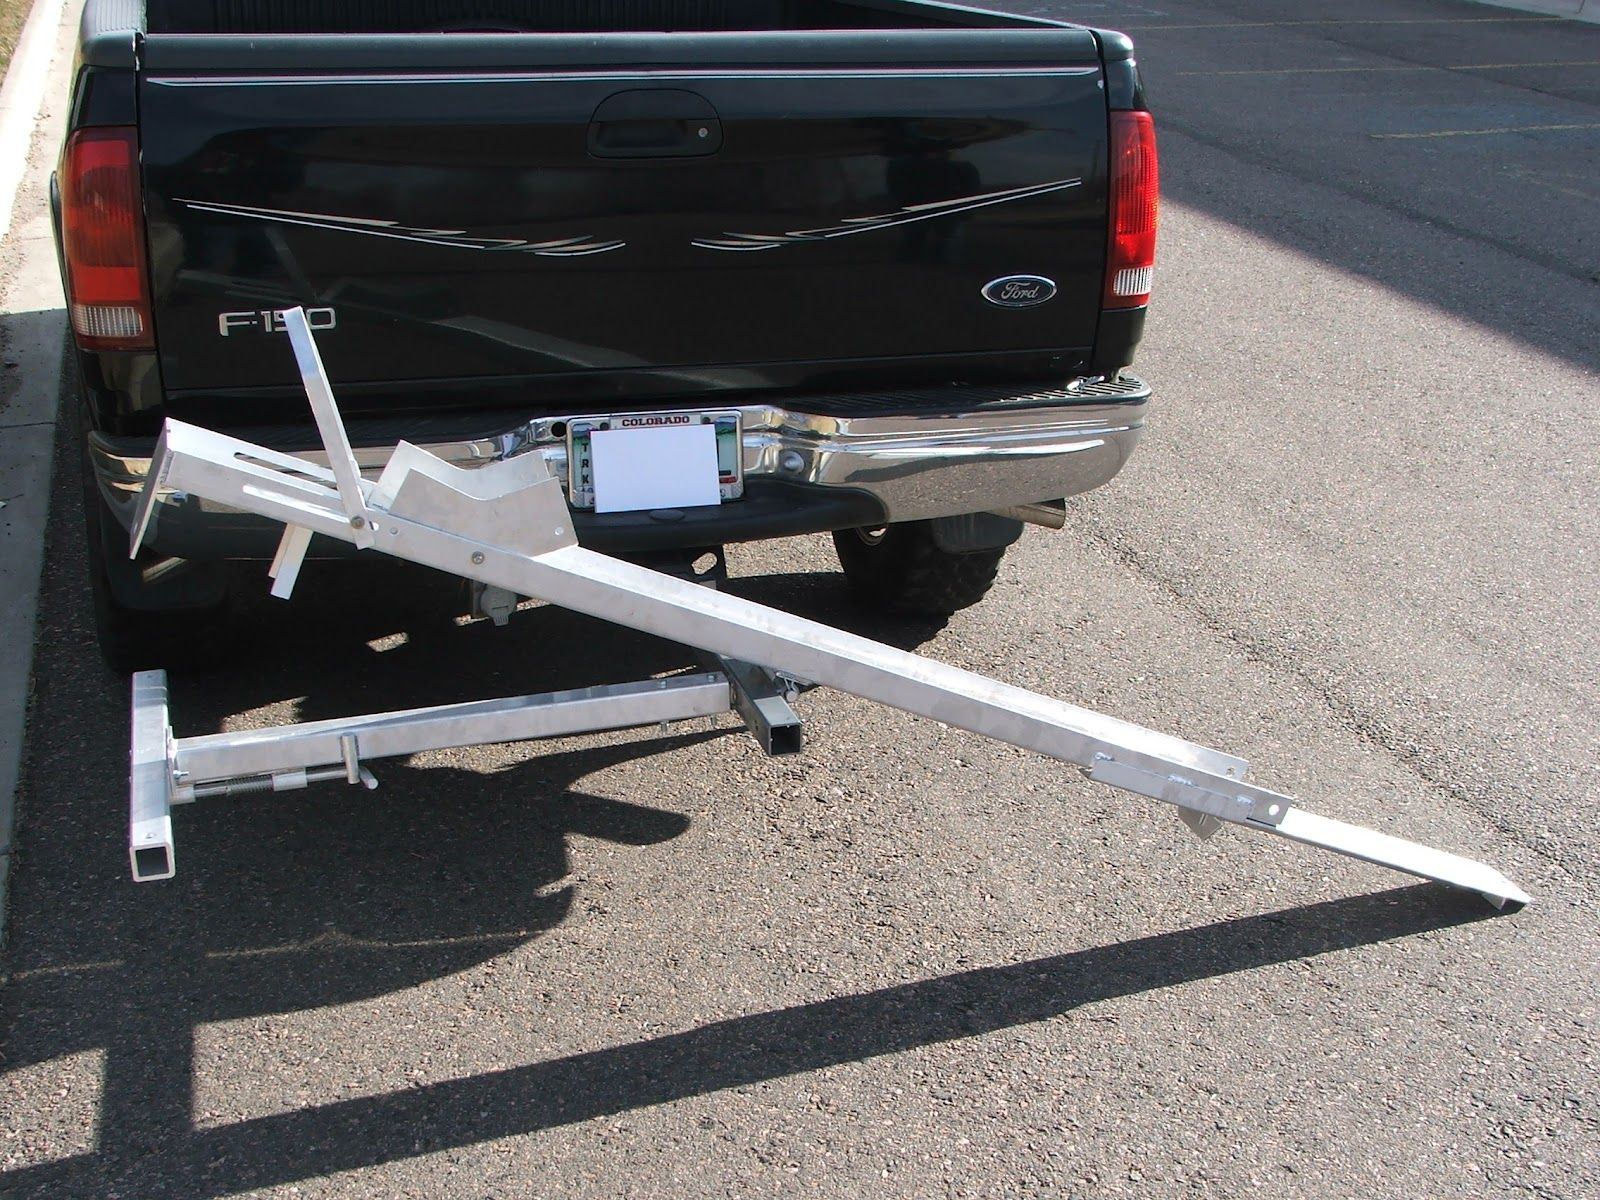 Pin By Braun Margarita On Motorcycle Carrier Motorcycle Carrier